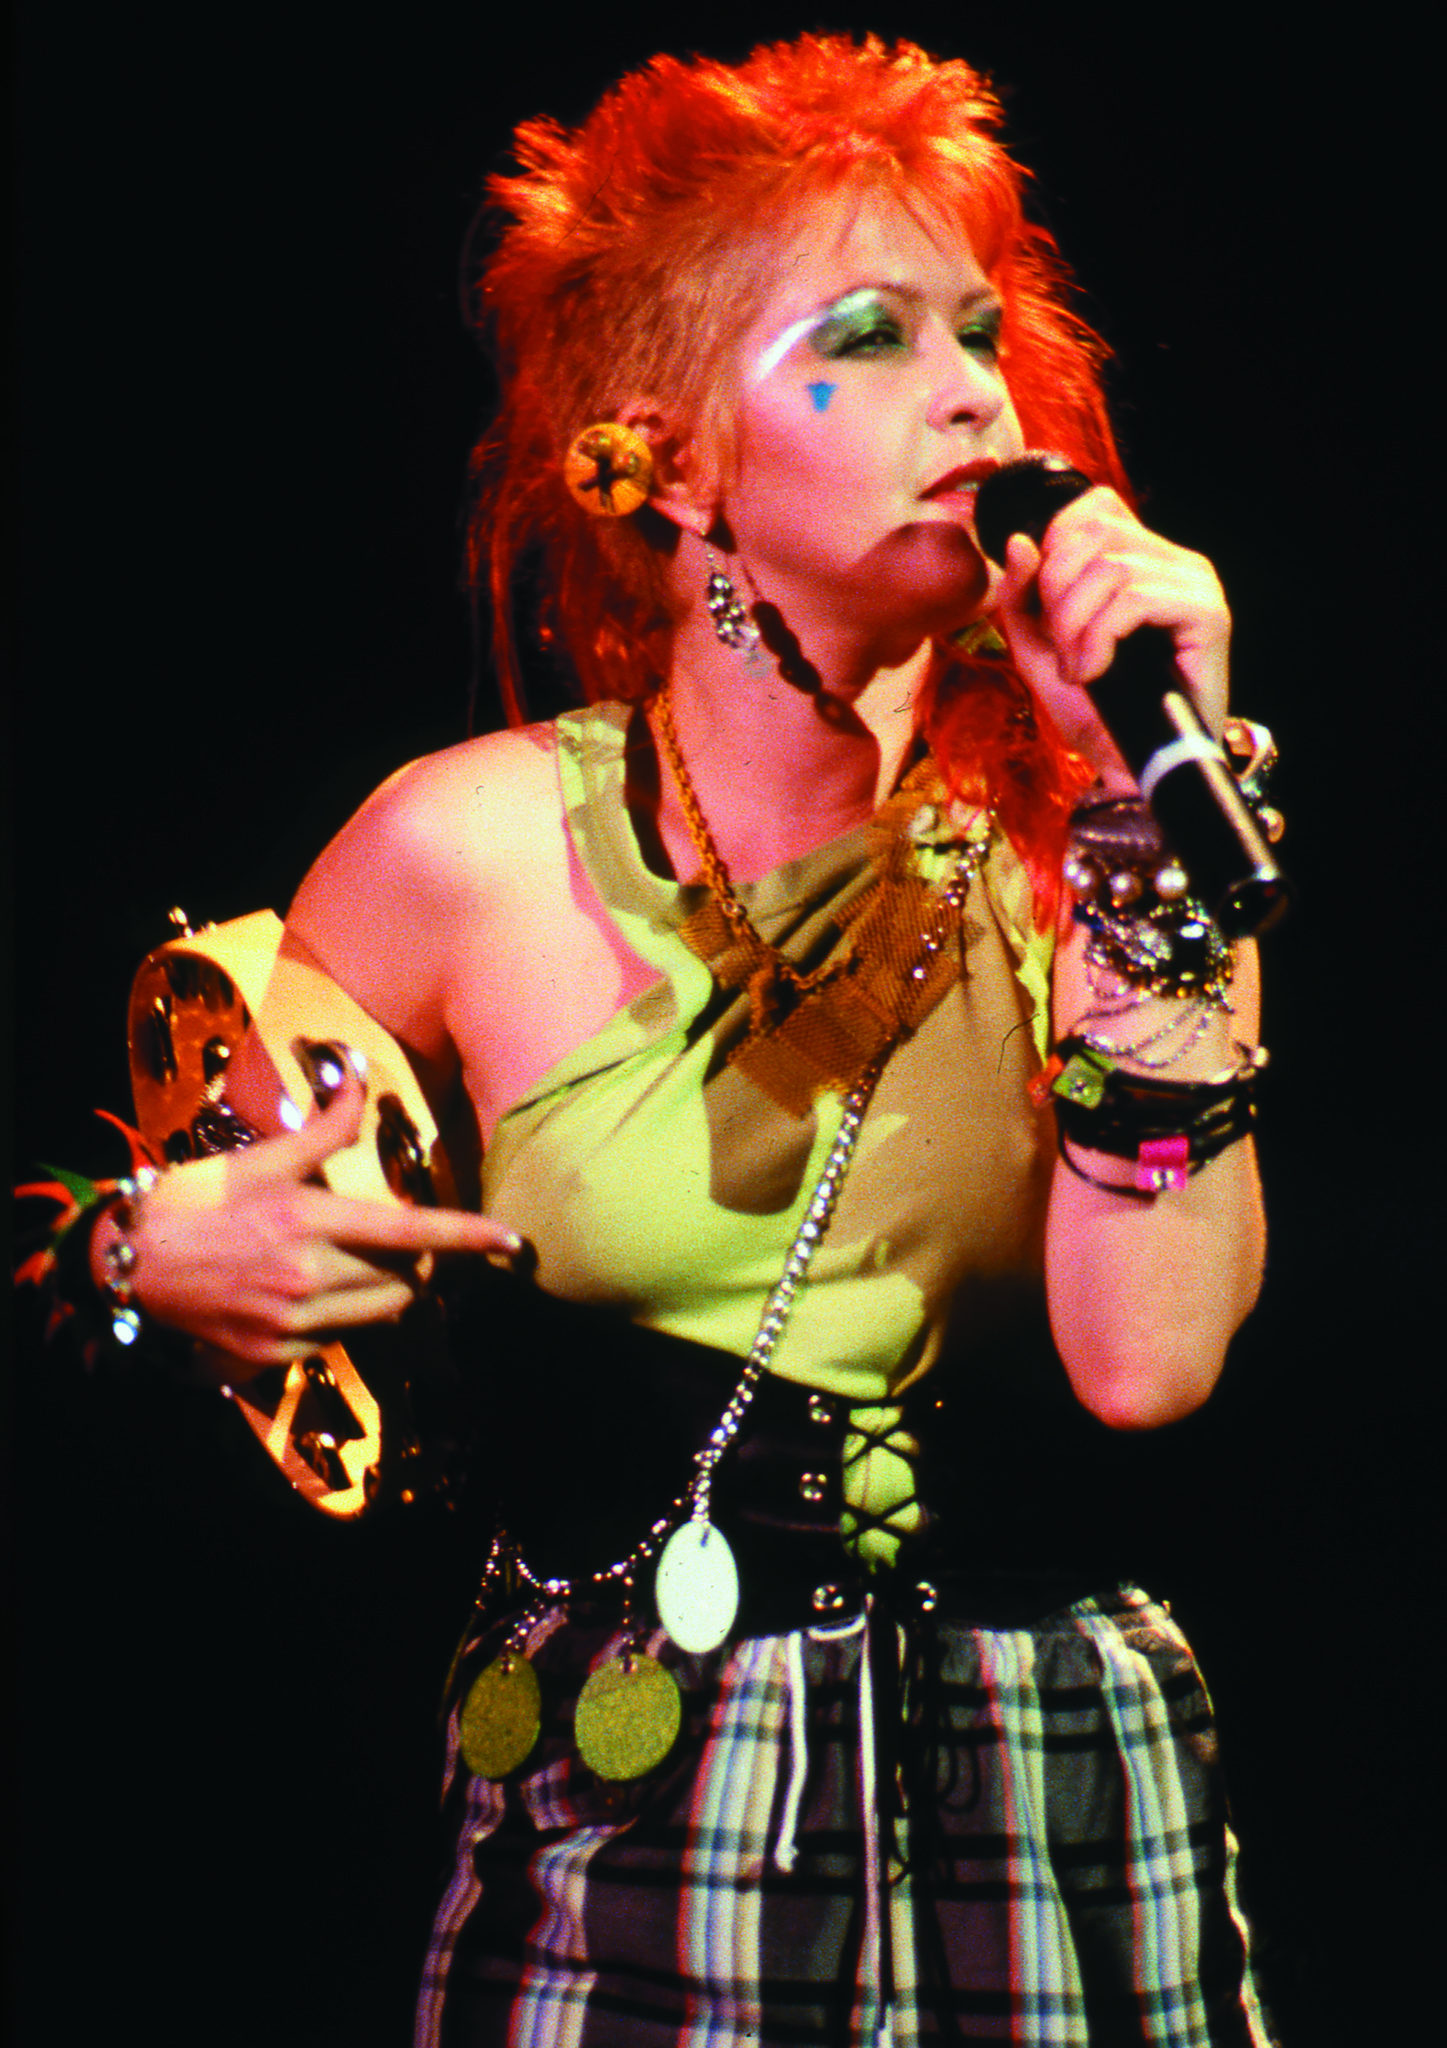 Cyndi Lauper at Irvine Meadows Ampitheatre in 1984.